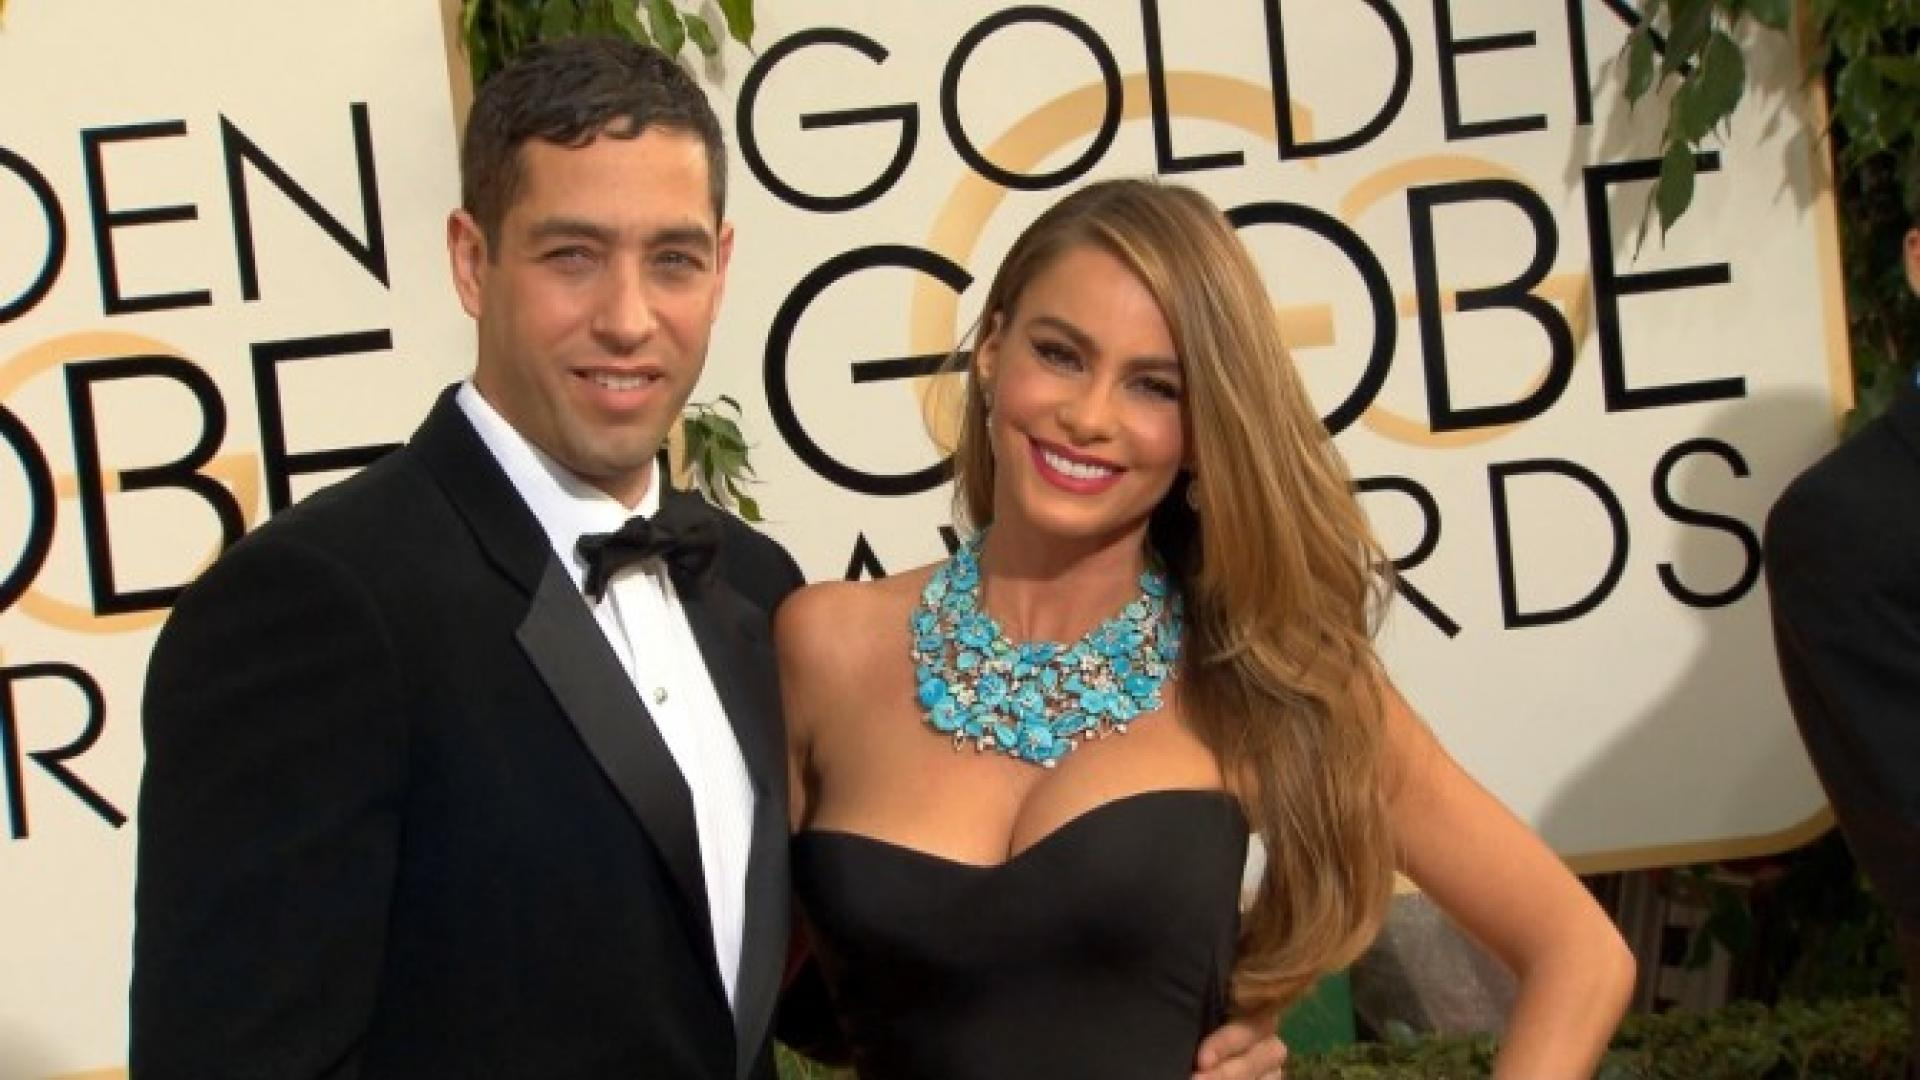 Sofia Vergara A Baby Needs Parents That Don T Hate Each Other Inside Edition